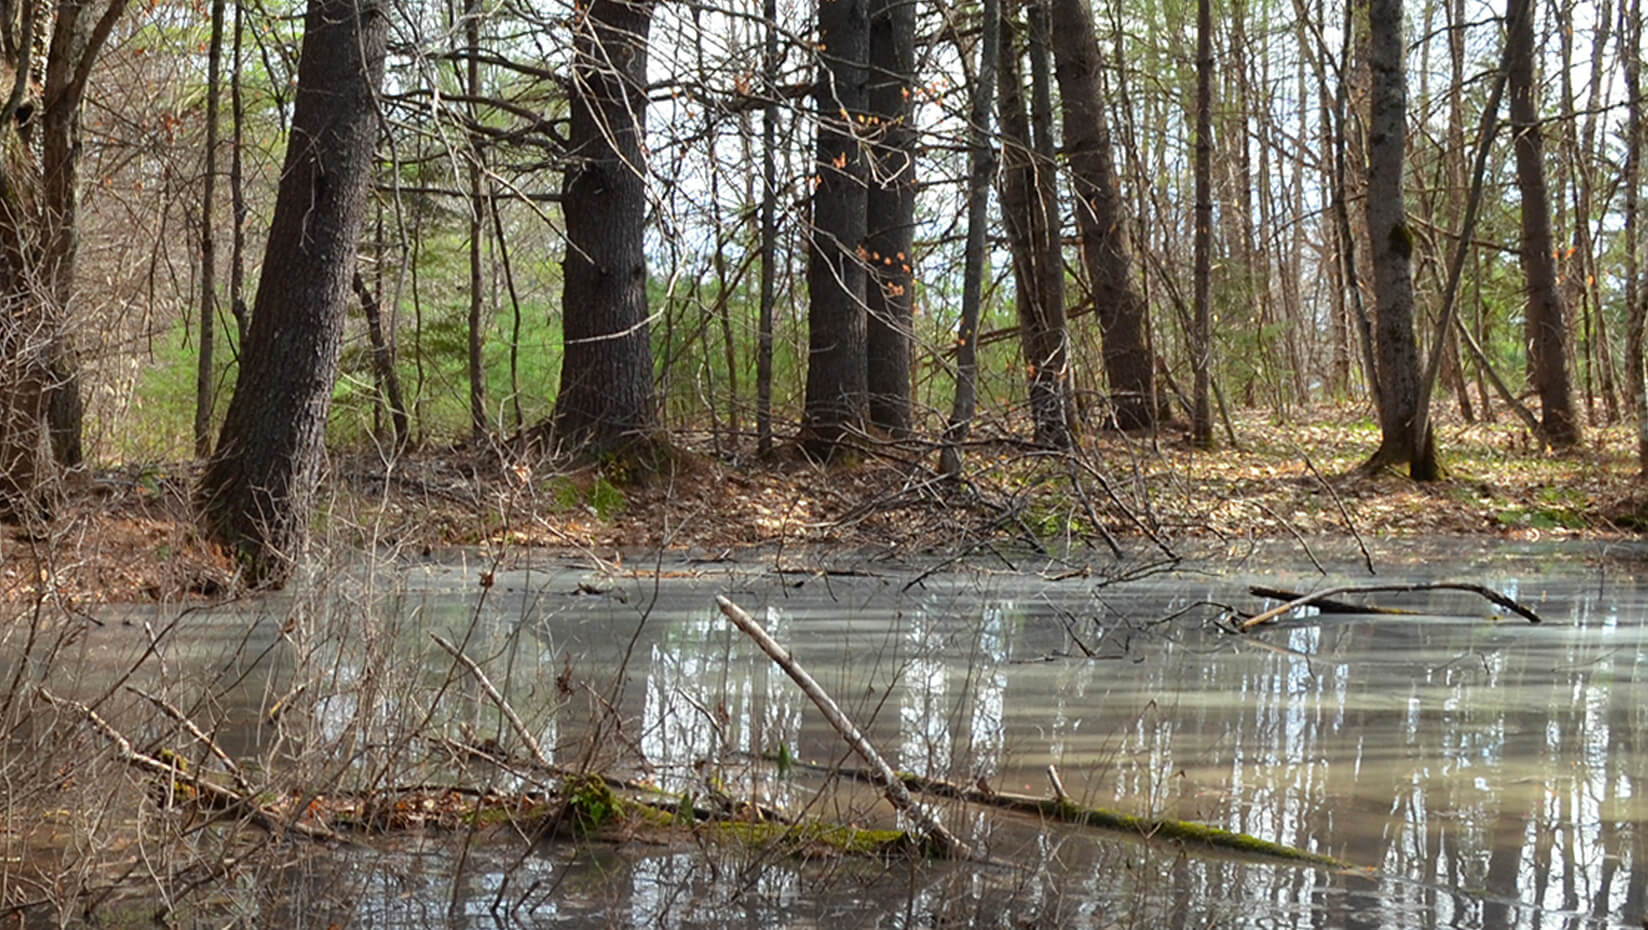 Vernal pool in a forest